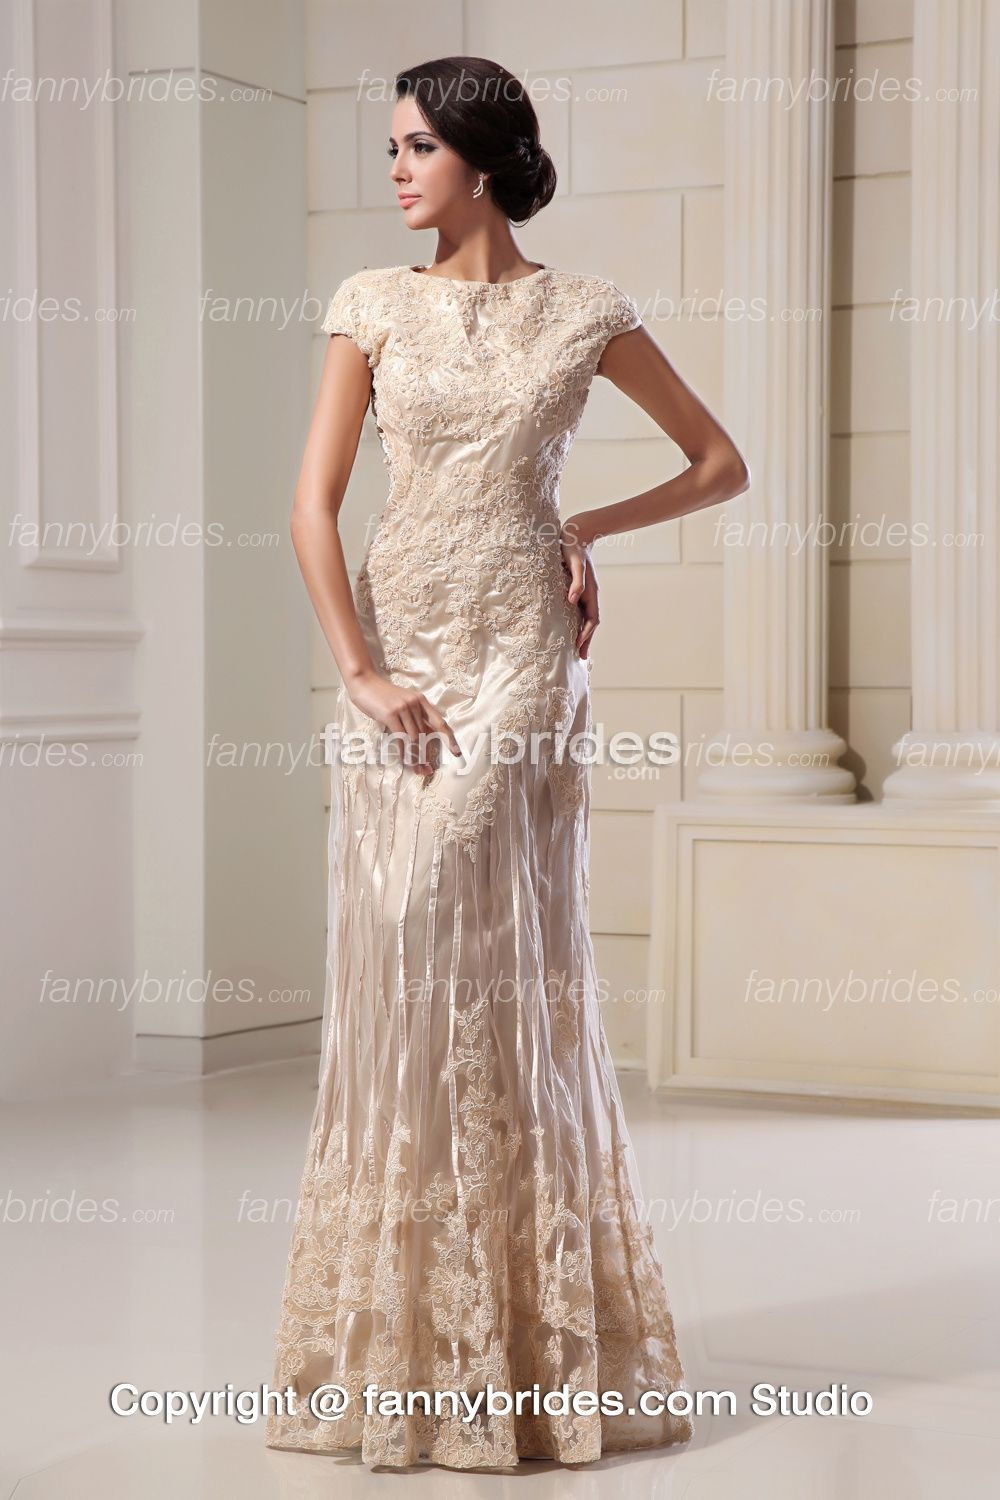 Lovely Model Of Champagne Colored Wedding Dresses With Sleeves According On Lace Plus Size Ball Gown